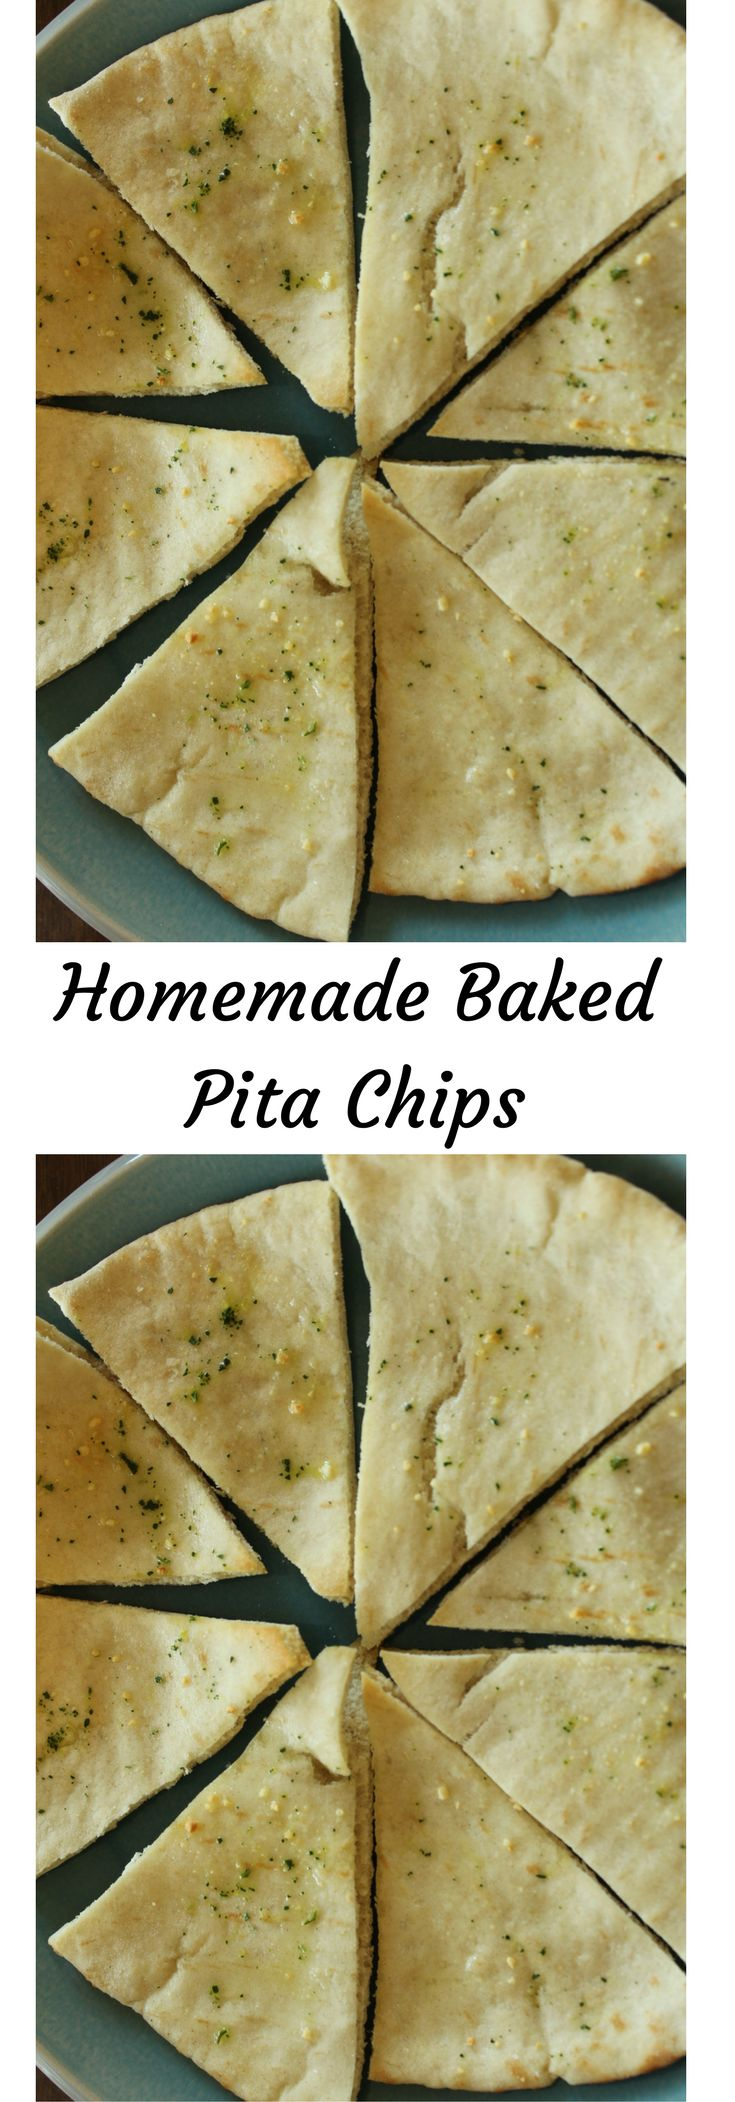 This homemade pita chips healthy recipe is easy to make. Learn how to make homemade baked pita chips. Click for the recipe or Pin to save for later.